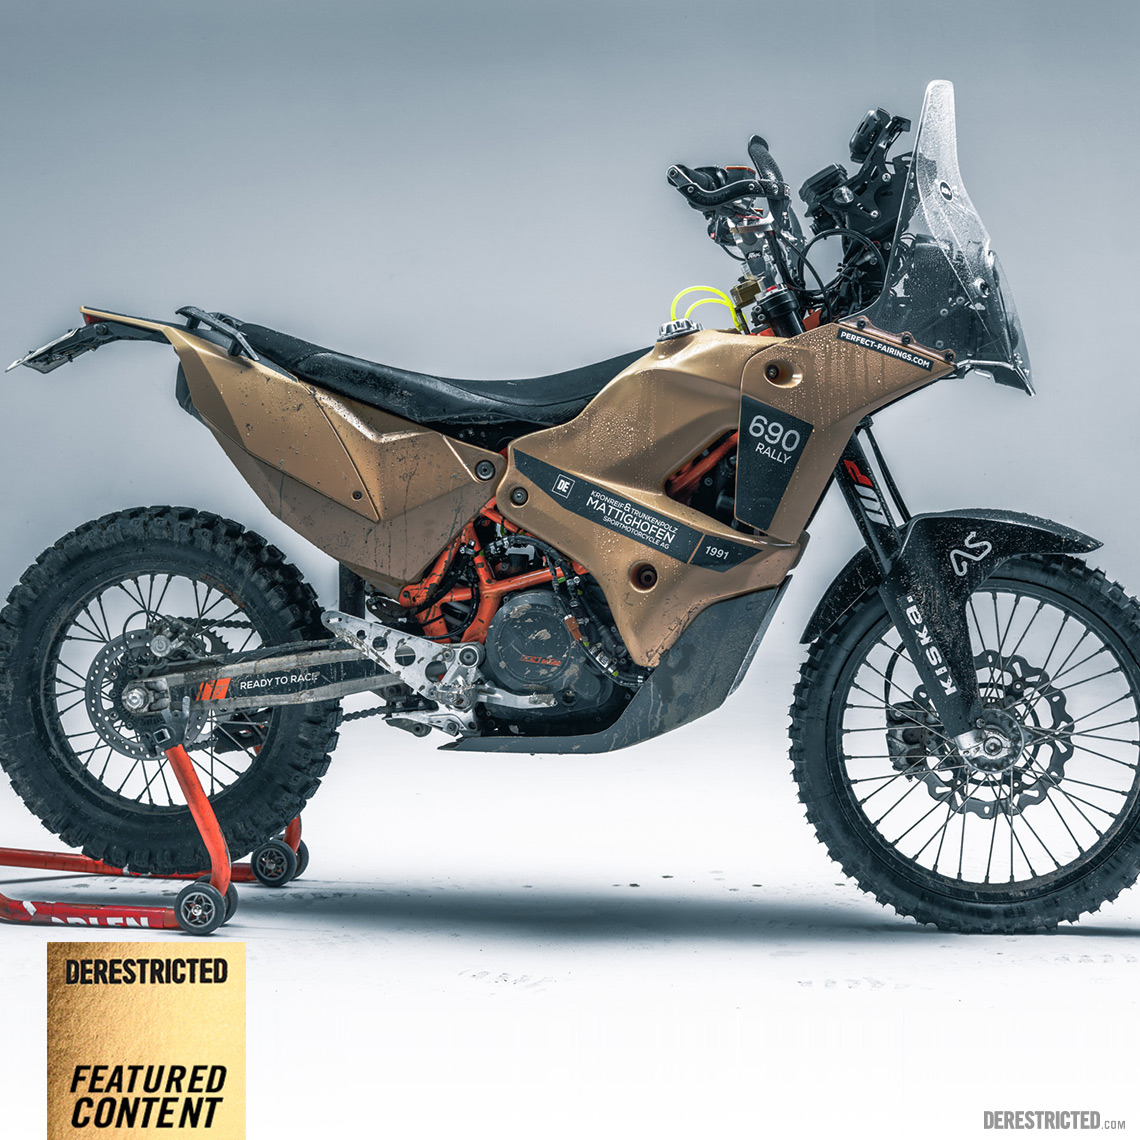 La KTM 690 Enduro tire sa révérence - Page 2 KTM-690-enduro-rally-custom-featured